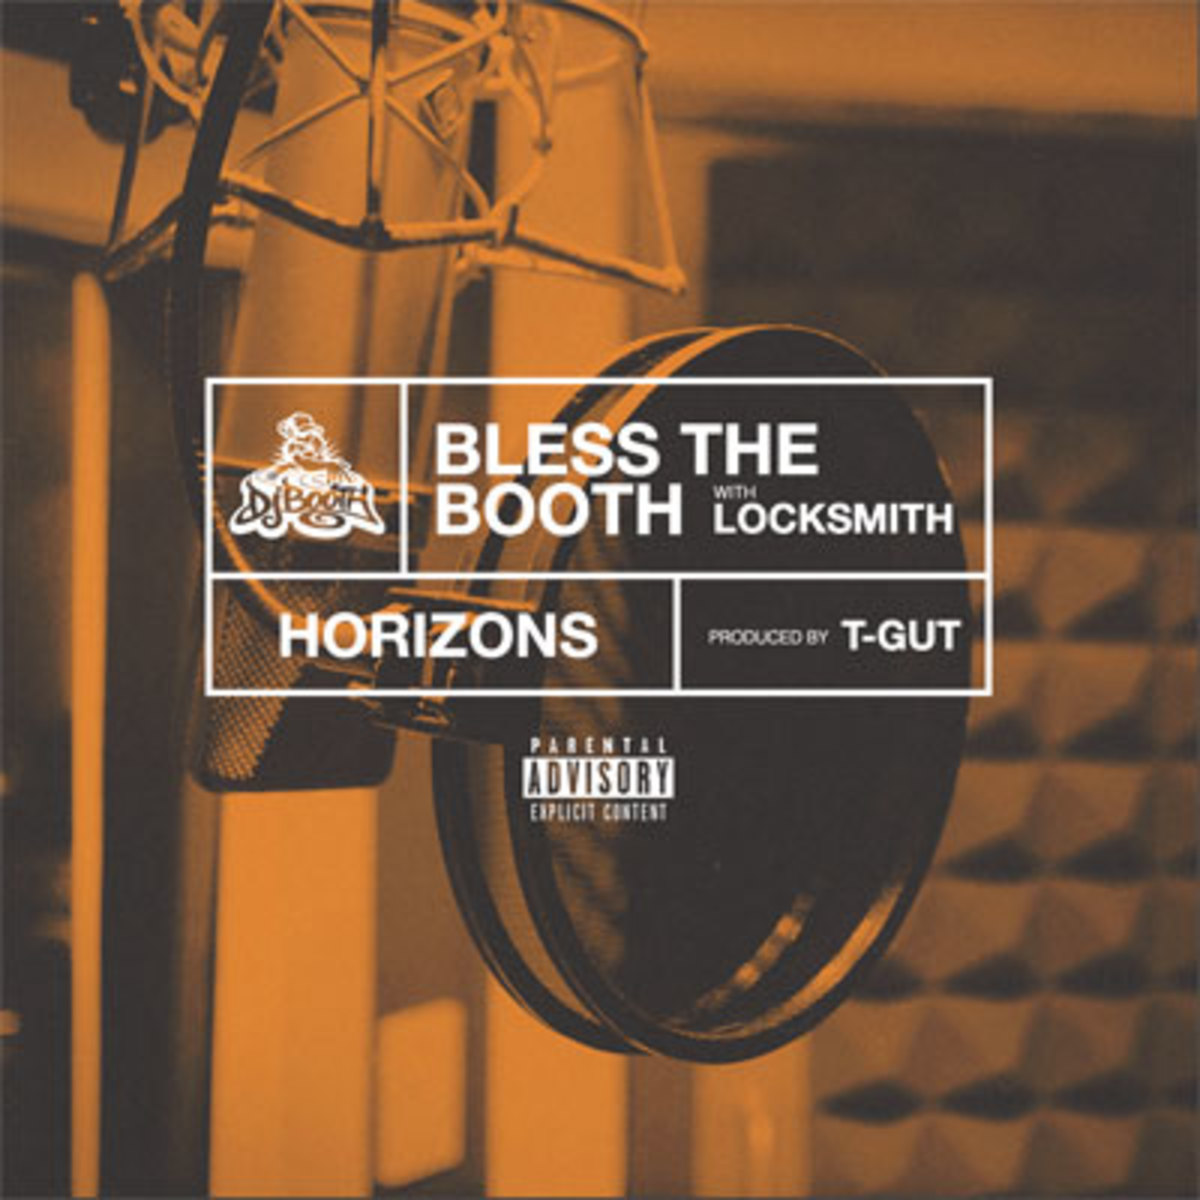 locksmith-bless-the-booth.jpg